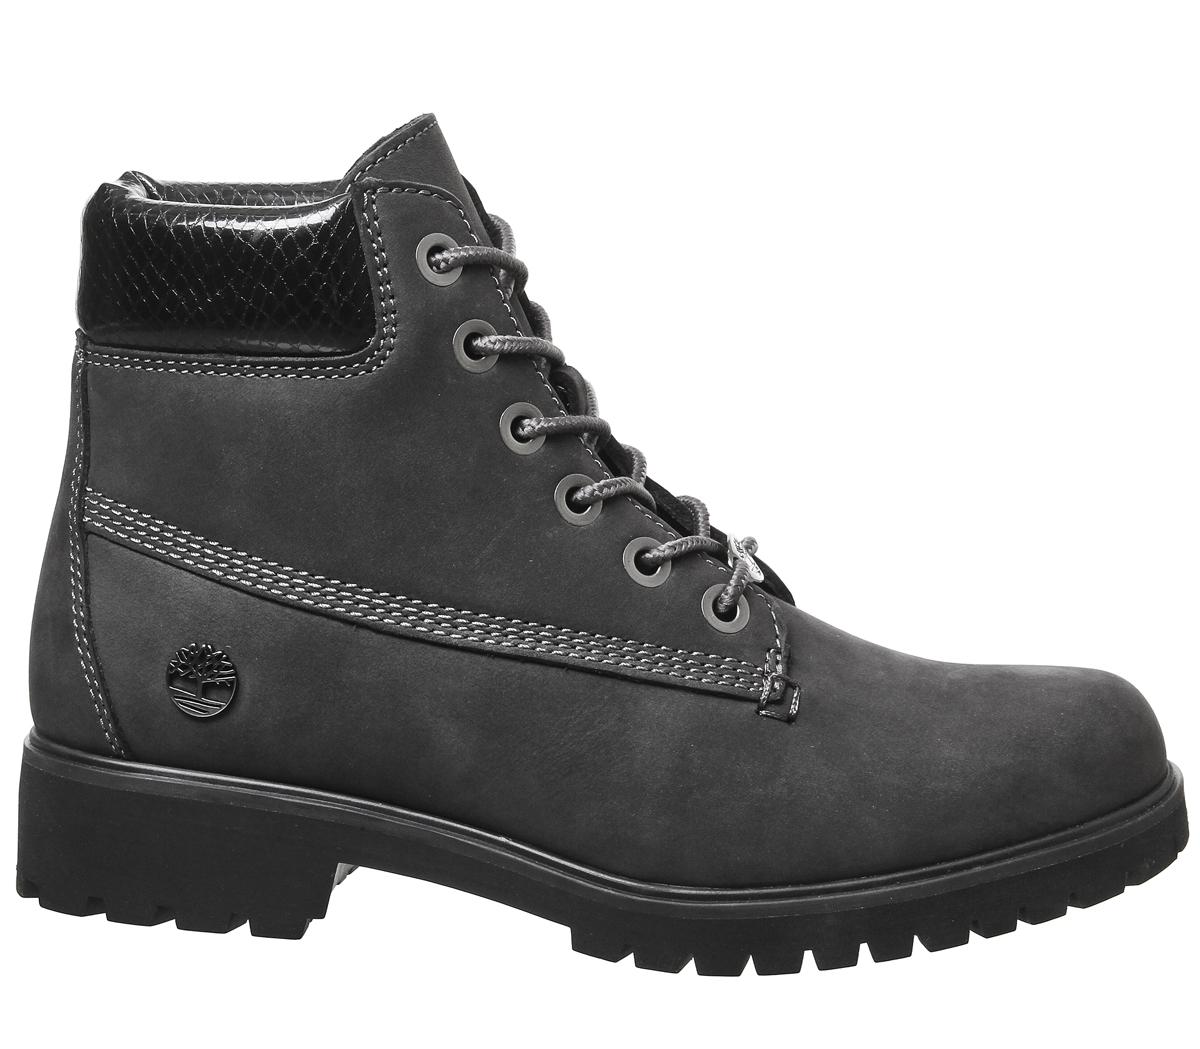 palma Genealogía alfiler  Timberland Slim Premium 6 Inch Boots Forged Iron Black Snake Collar - Ankle  Boots